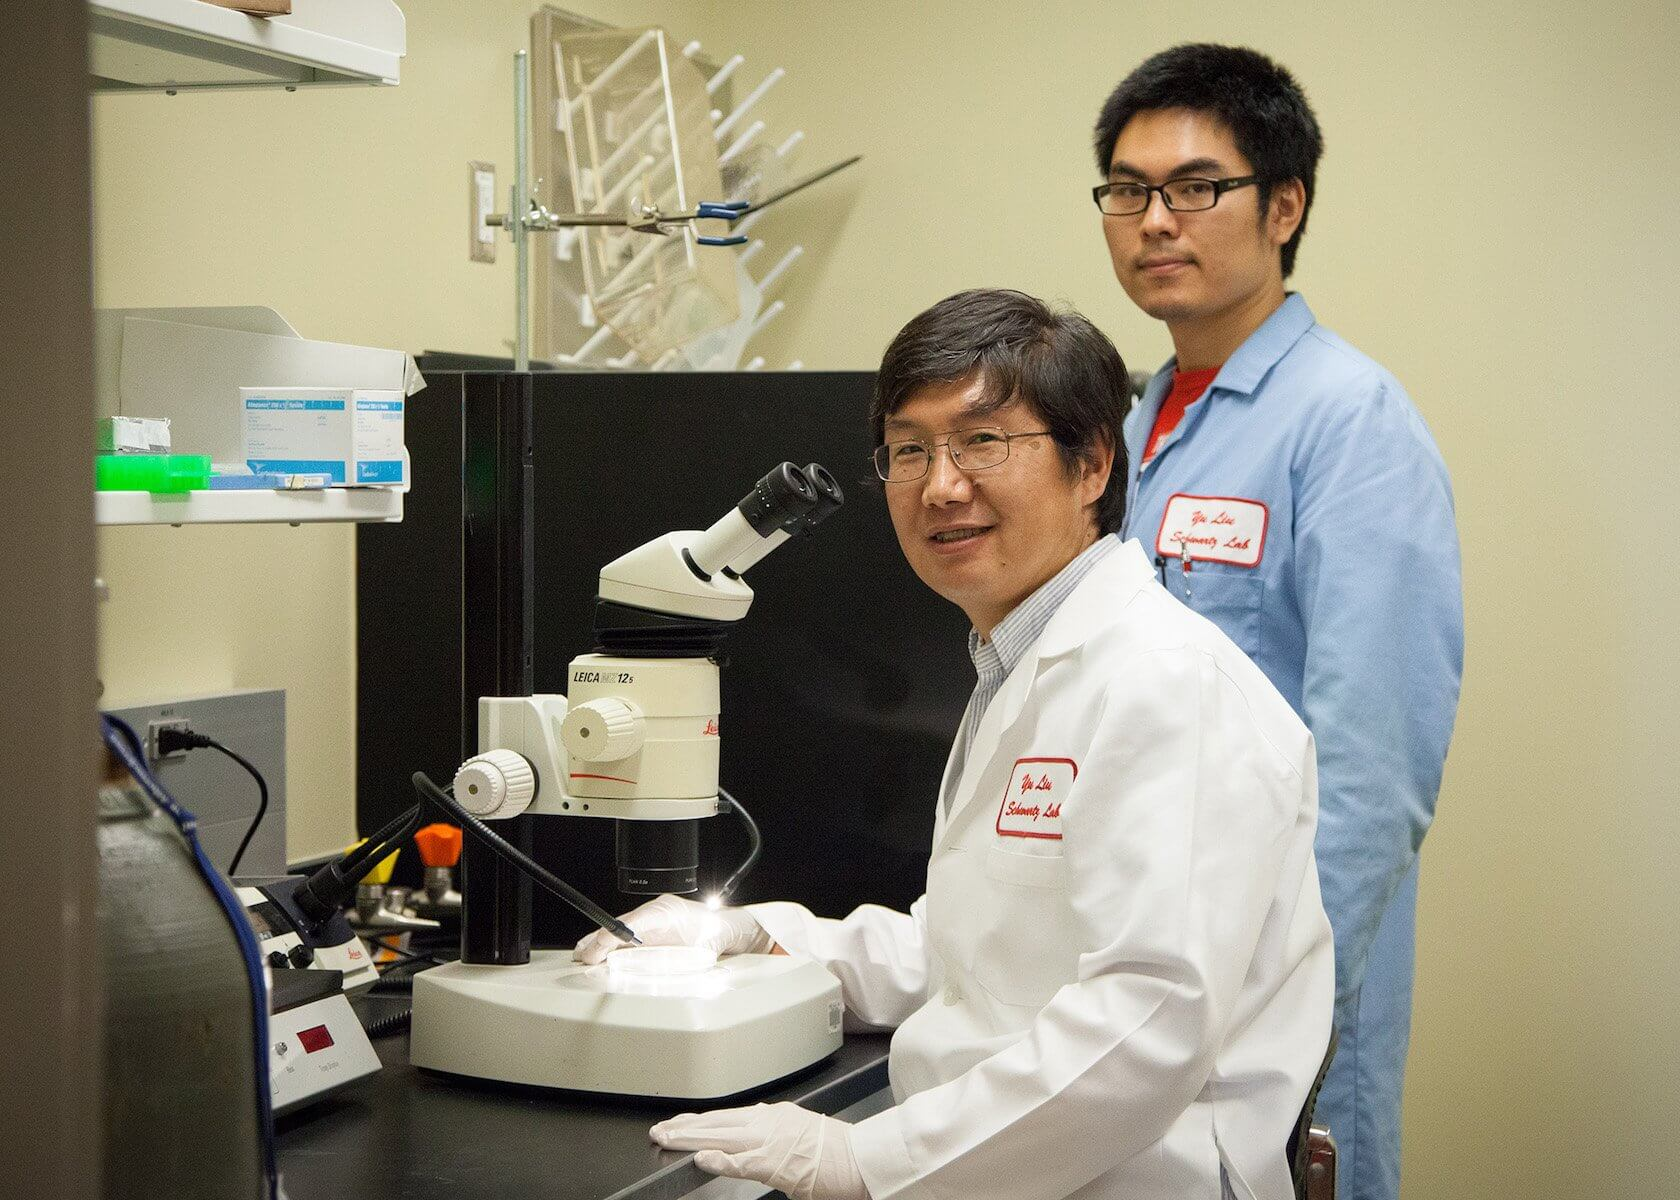 Yu Liu, Ph.D., an assistant professor of biochemistry at University of Houston, and Xiaopeng Shen, Xiaopeng Shen, a postdoctoral fellow in Liu's lab and first author of the article.